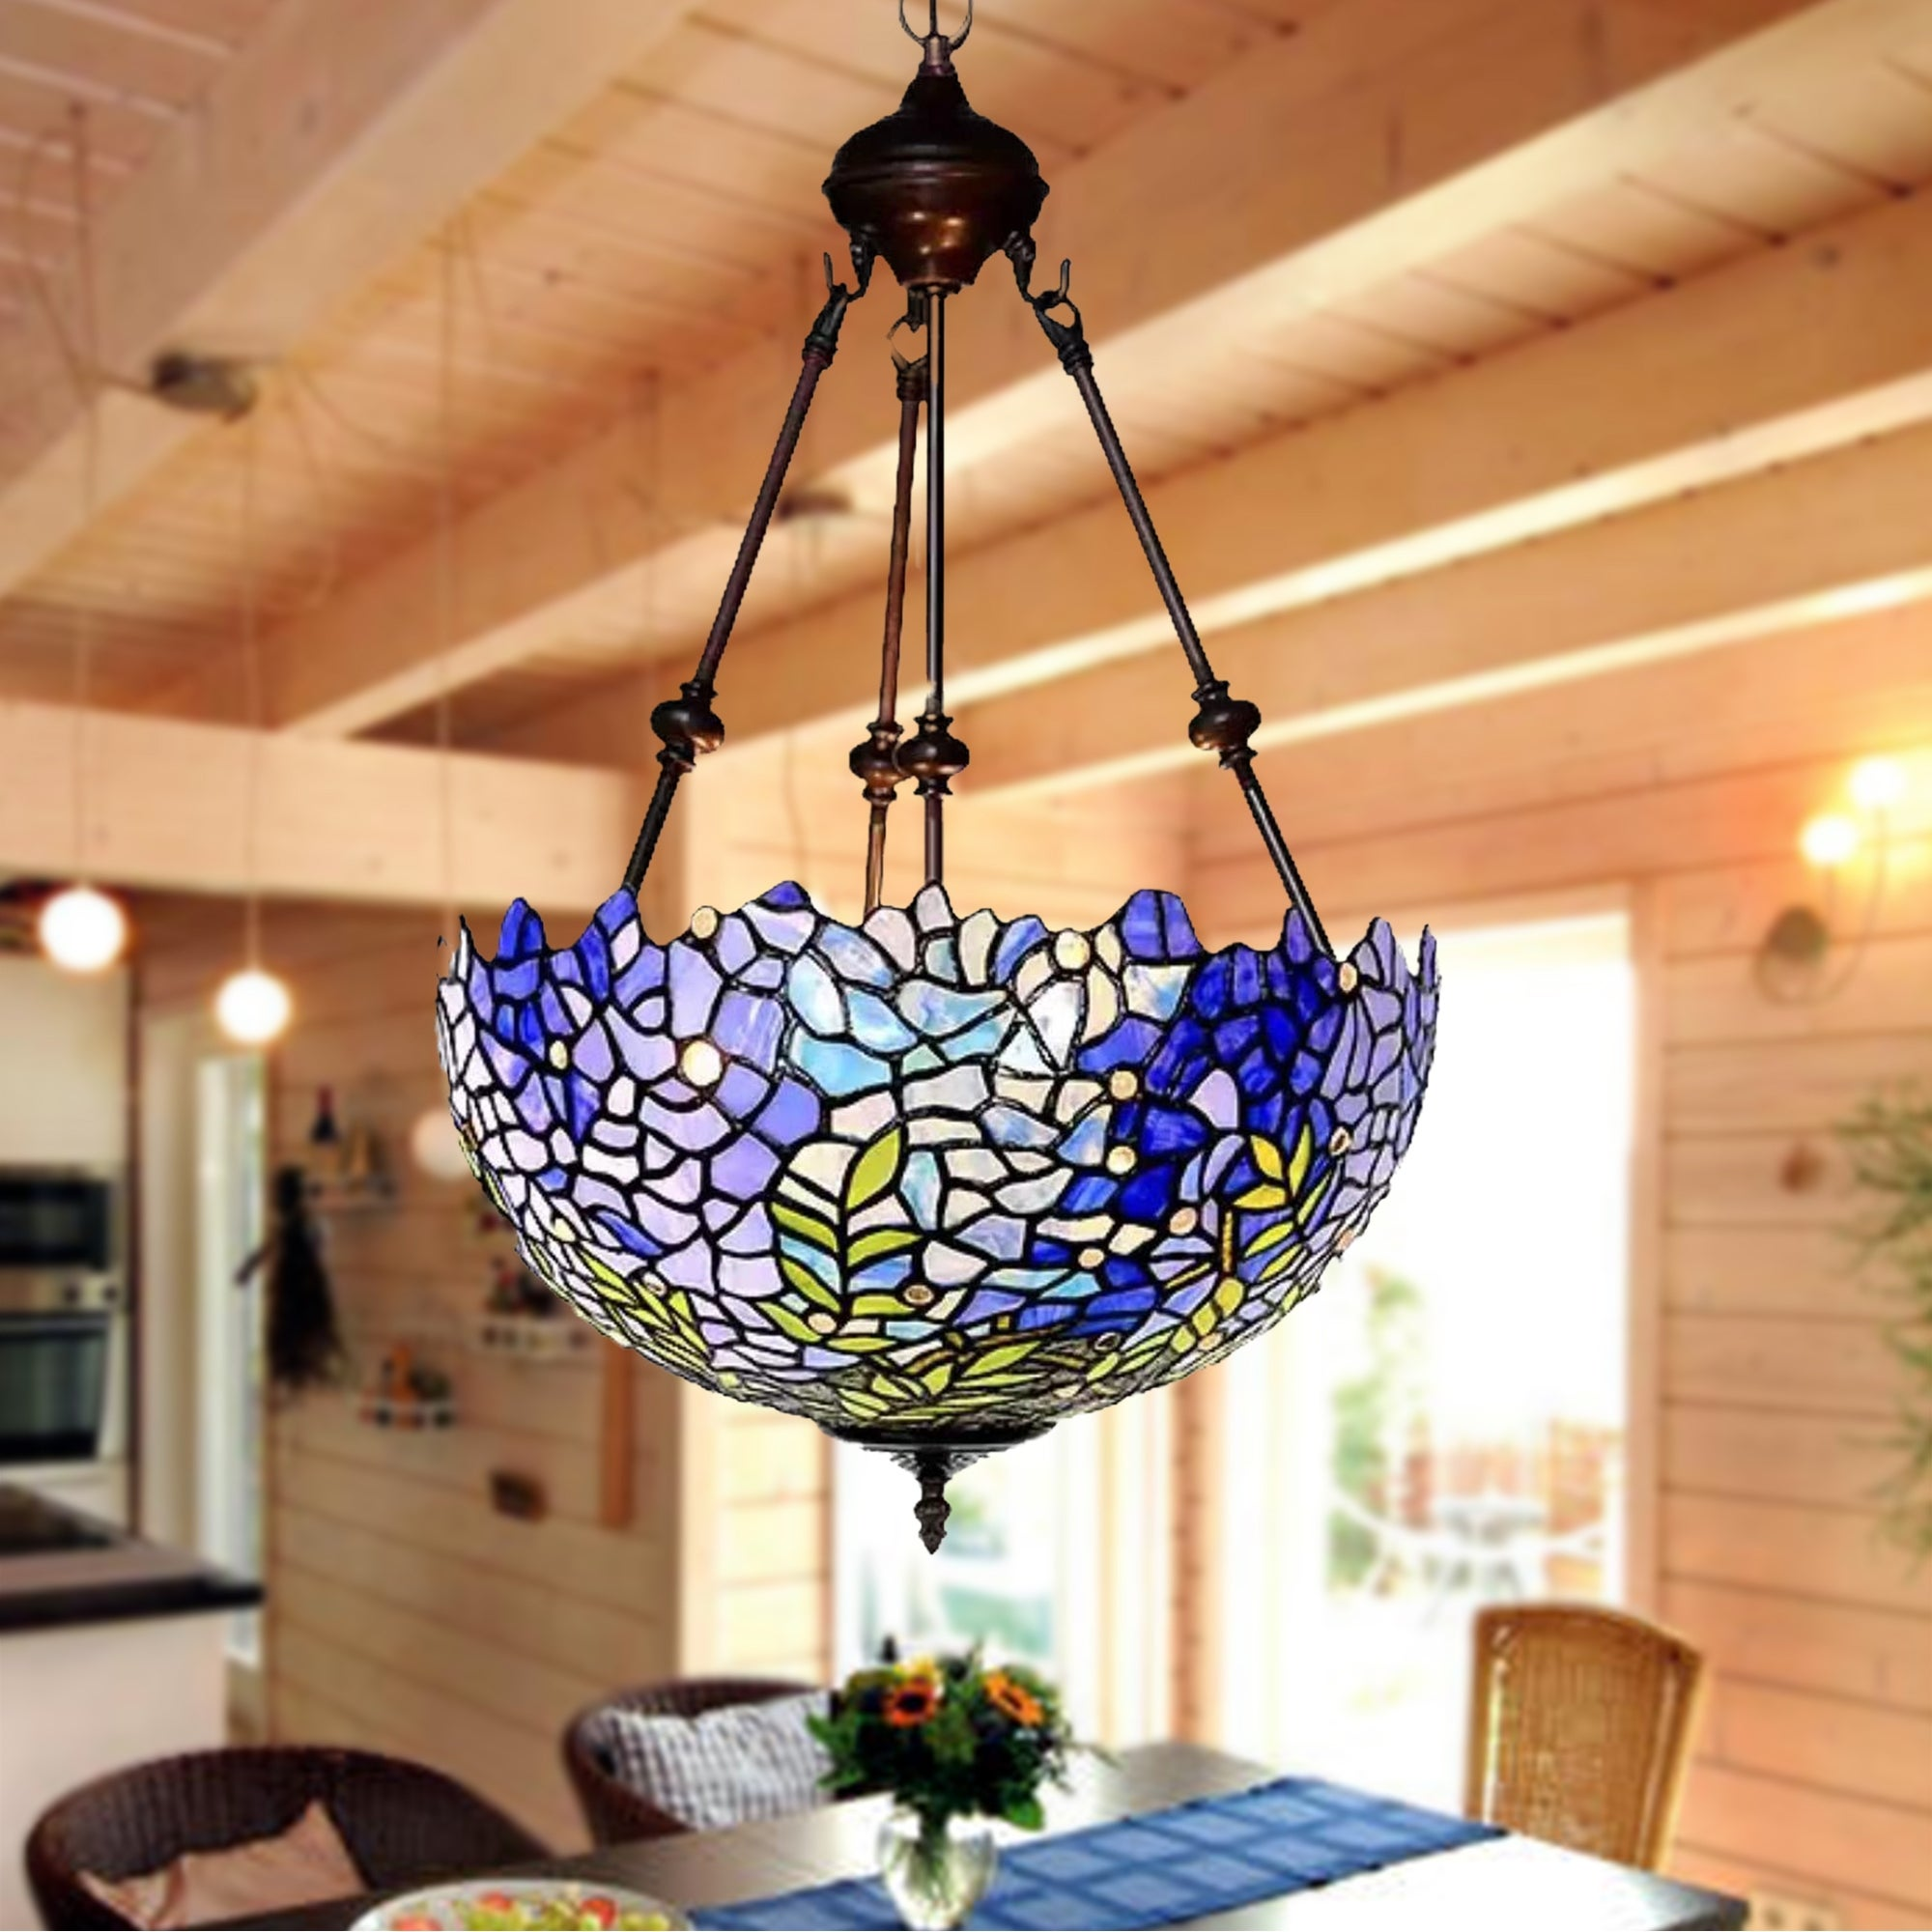 Shop Black Friday Deals On Baronn Wisteria Design Stained Glass 2 Light Tiffany Style Chandelier Overstock 31638480